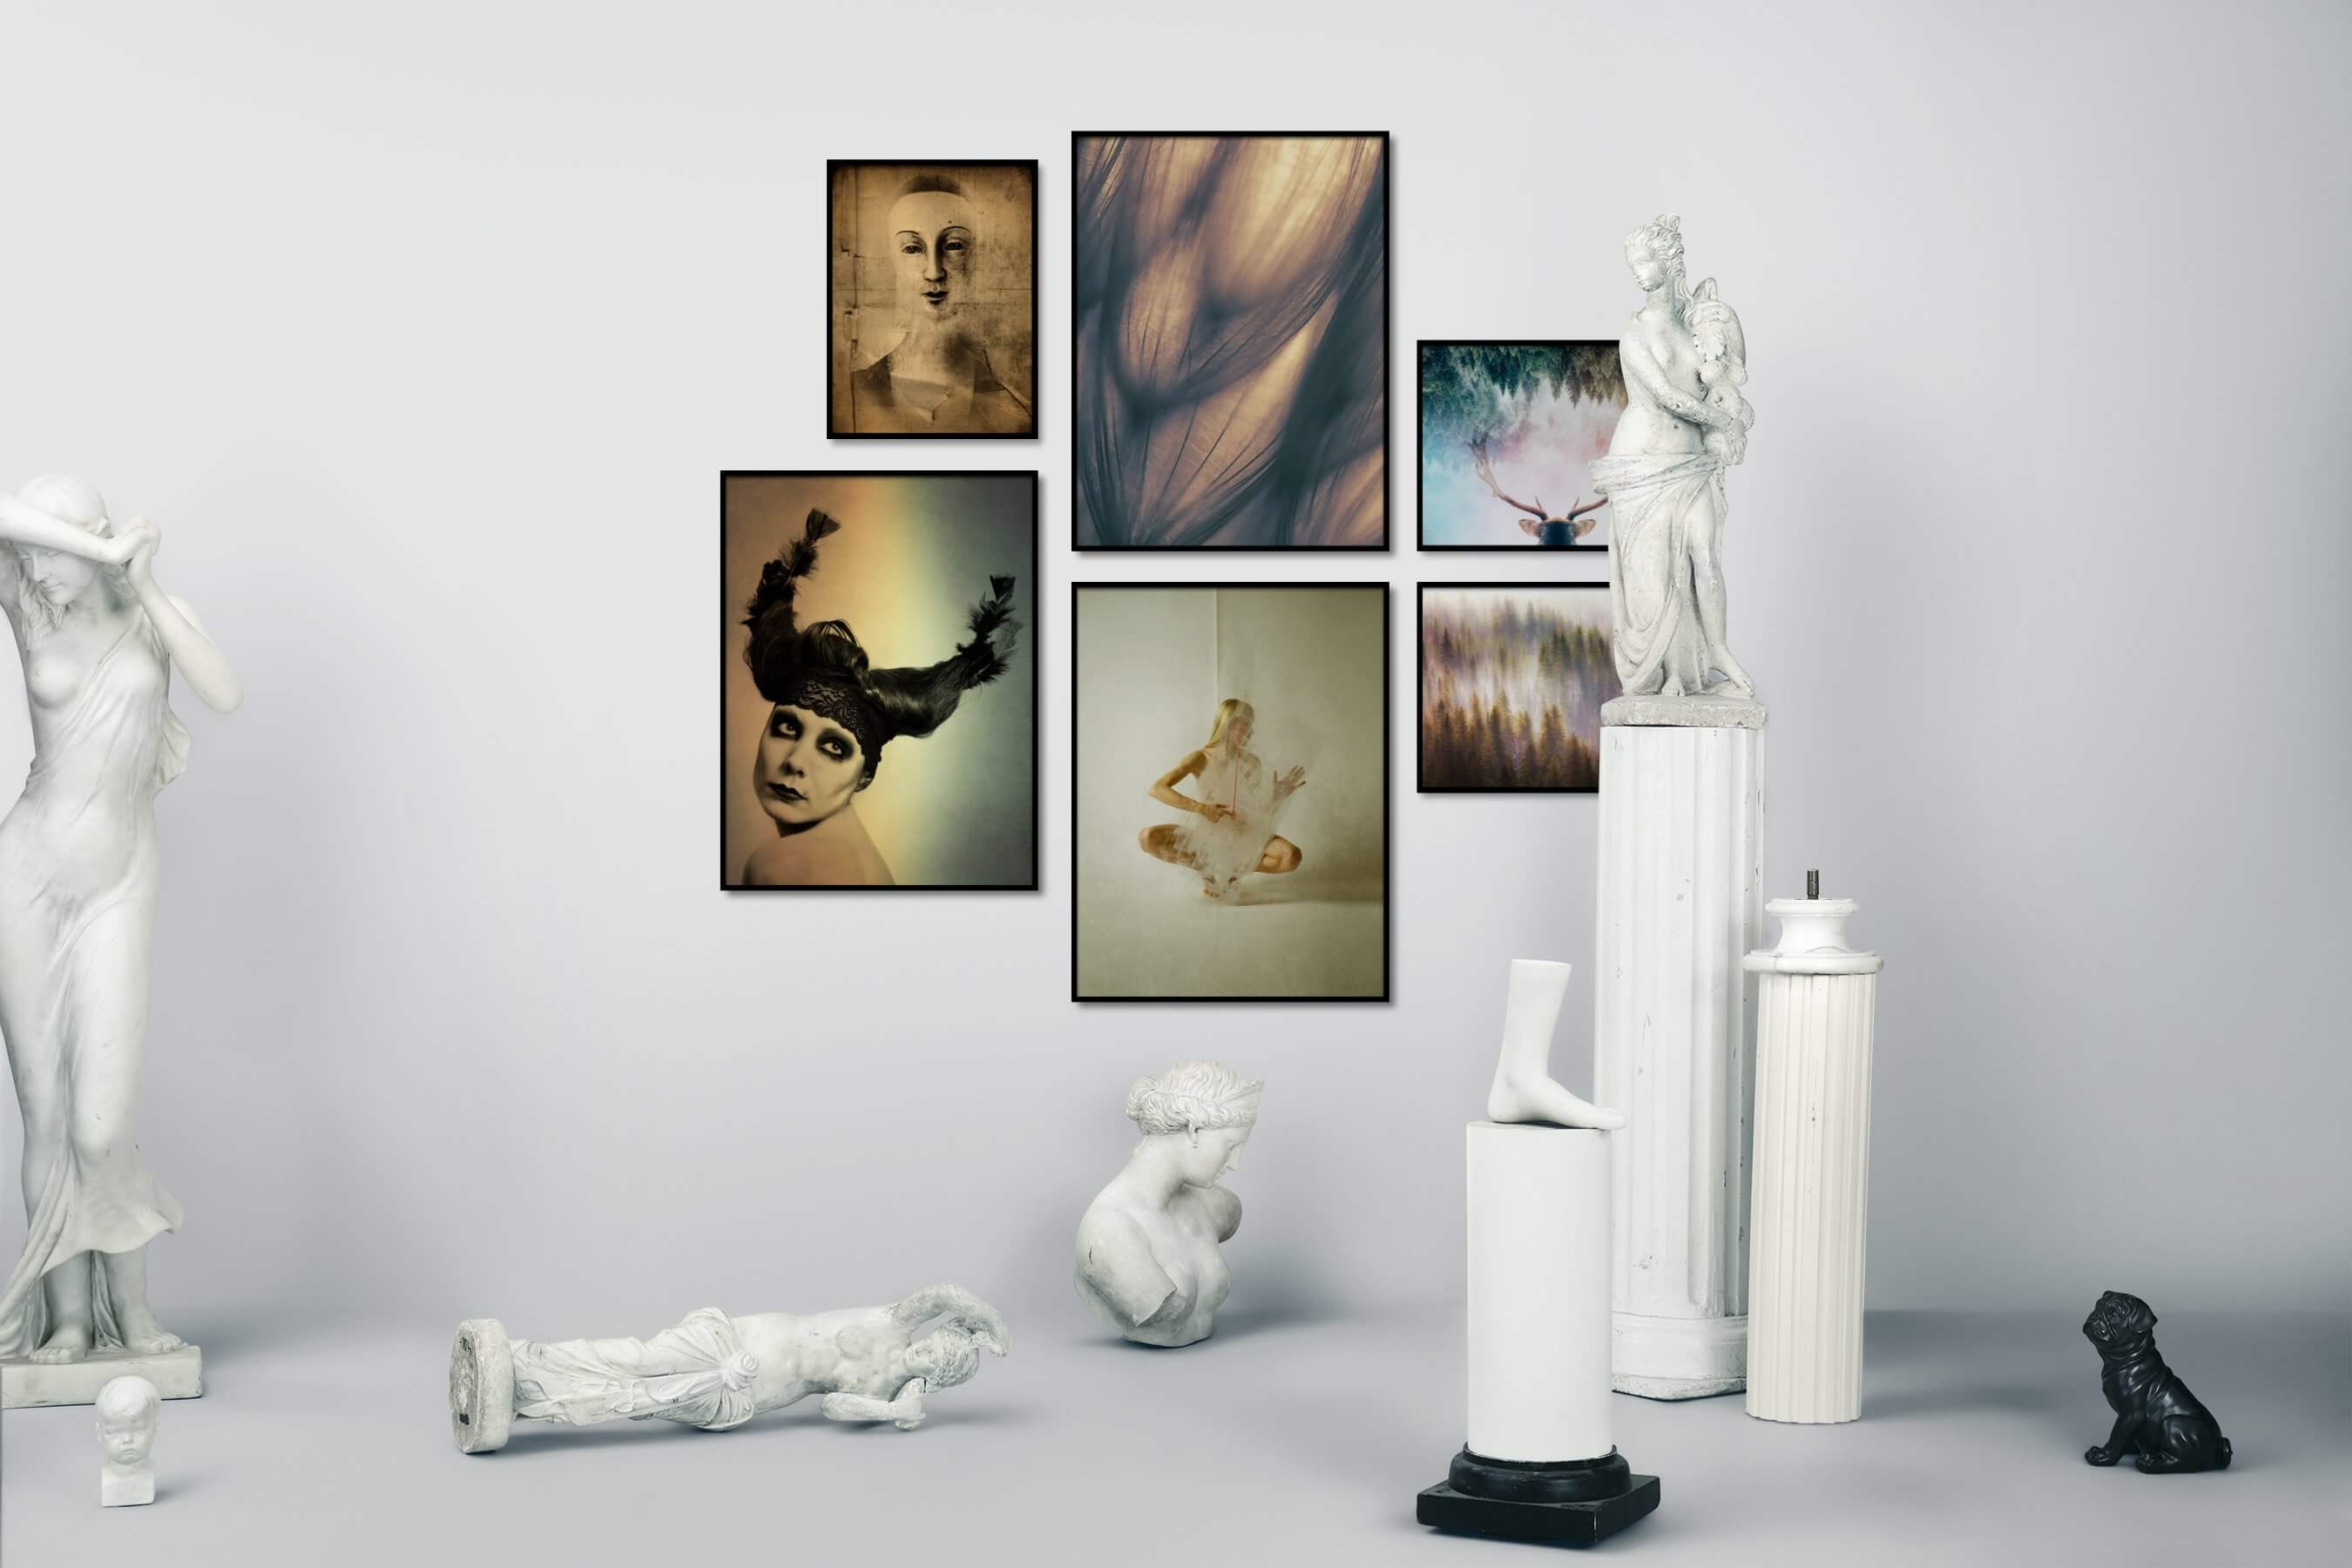 Gallery wall idea with six framed pictures arranged on a wall depicting Artsy, Vintage, For the Moderate, Flowers & Plants, Mindfulness, Nature, and Animals